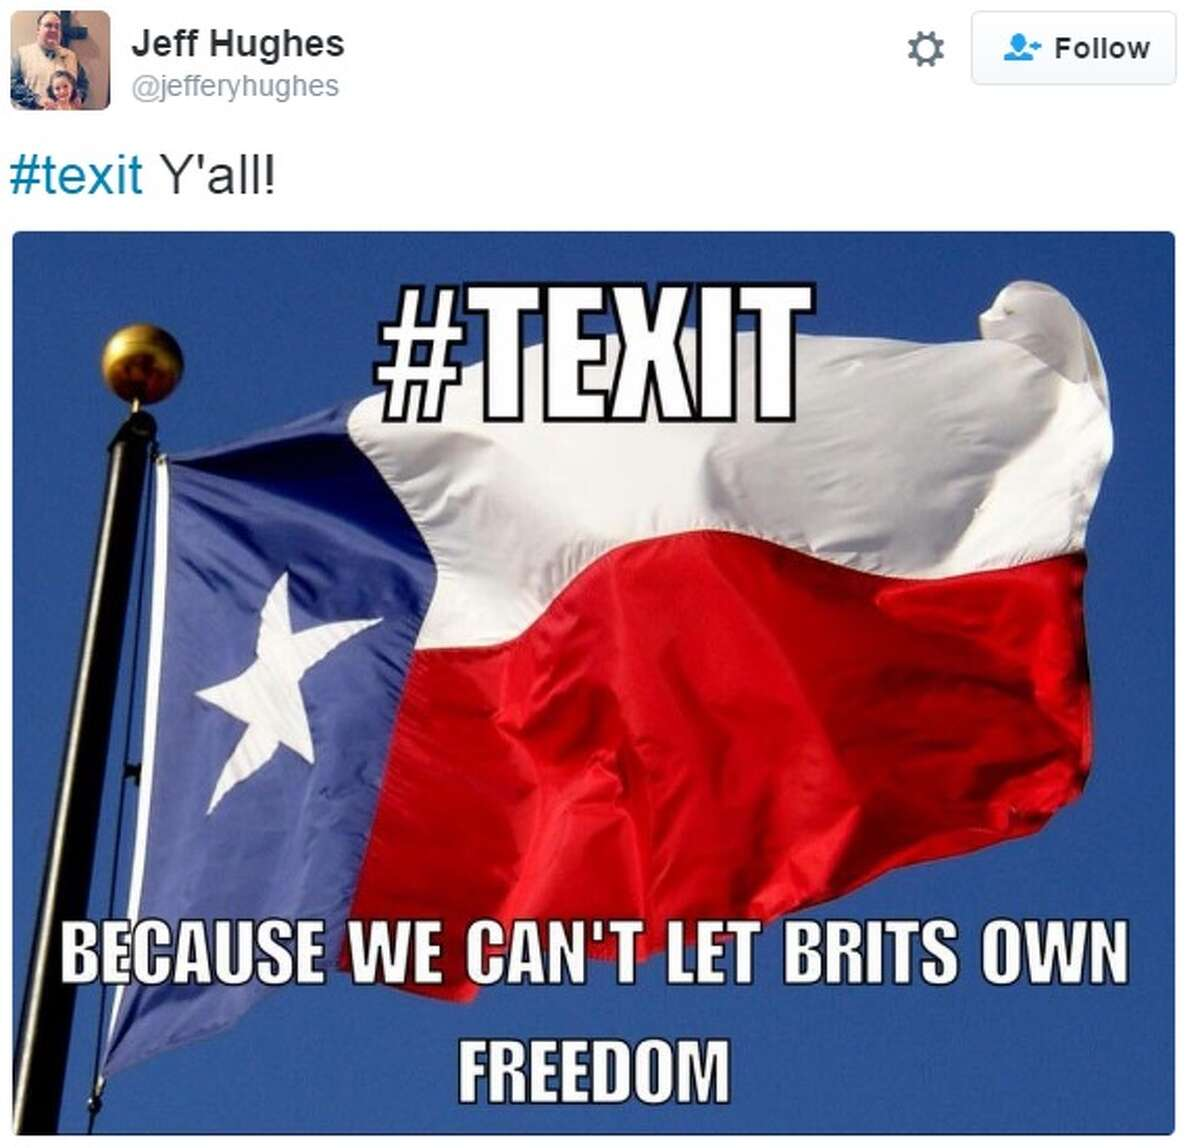 Some people take the idea of a Texas secession as a joke. Tweeted by @jefferyhughes